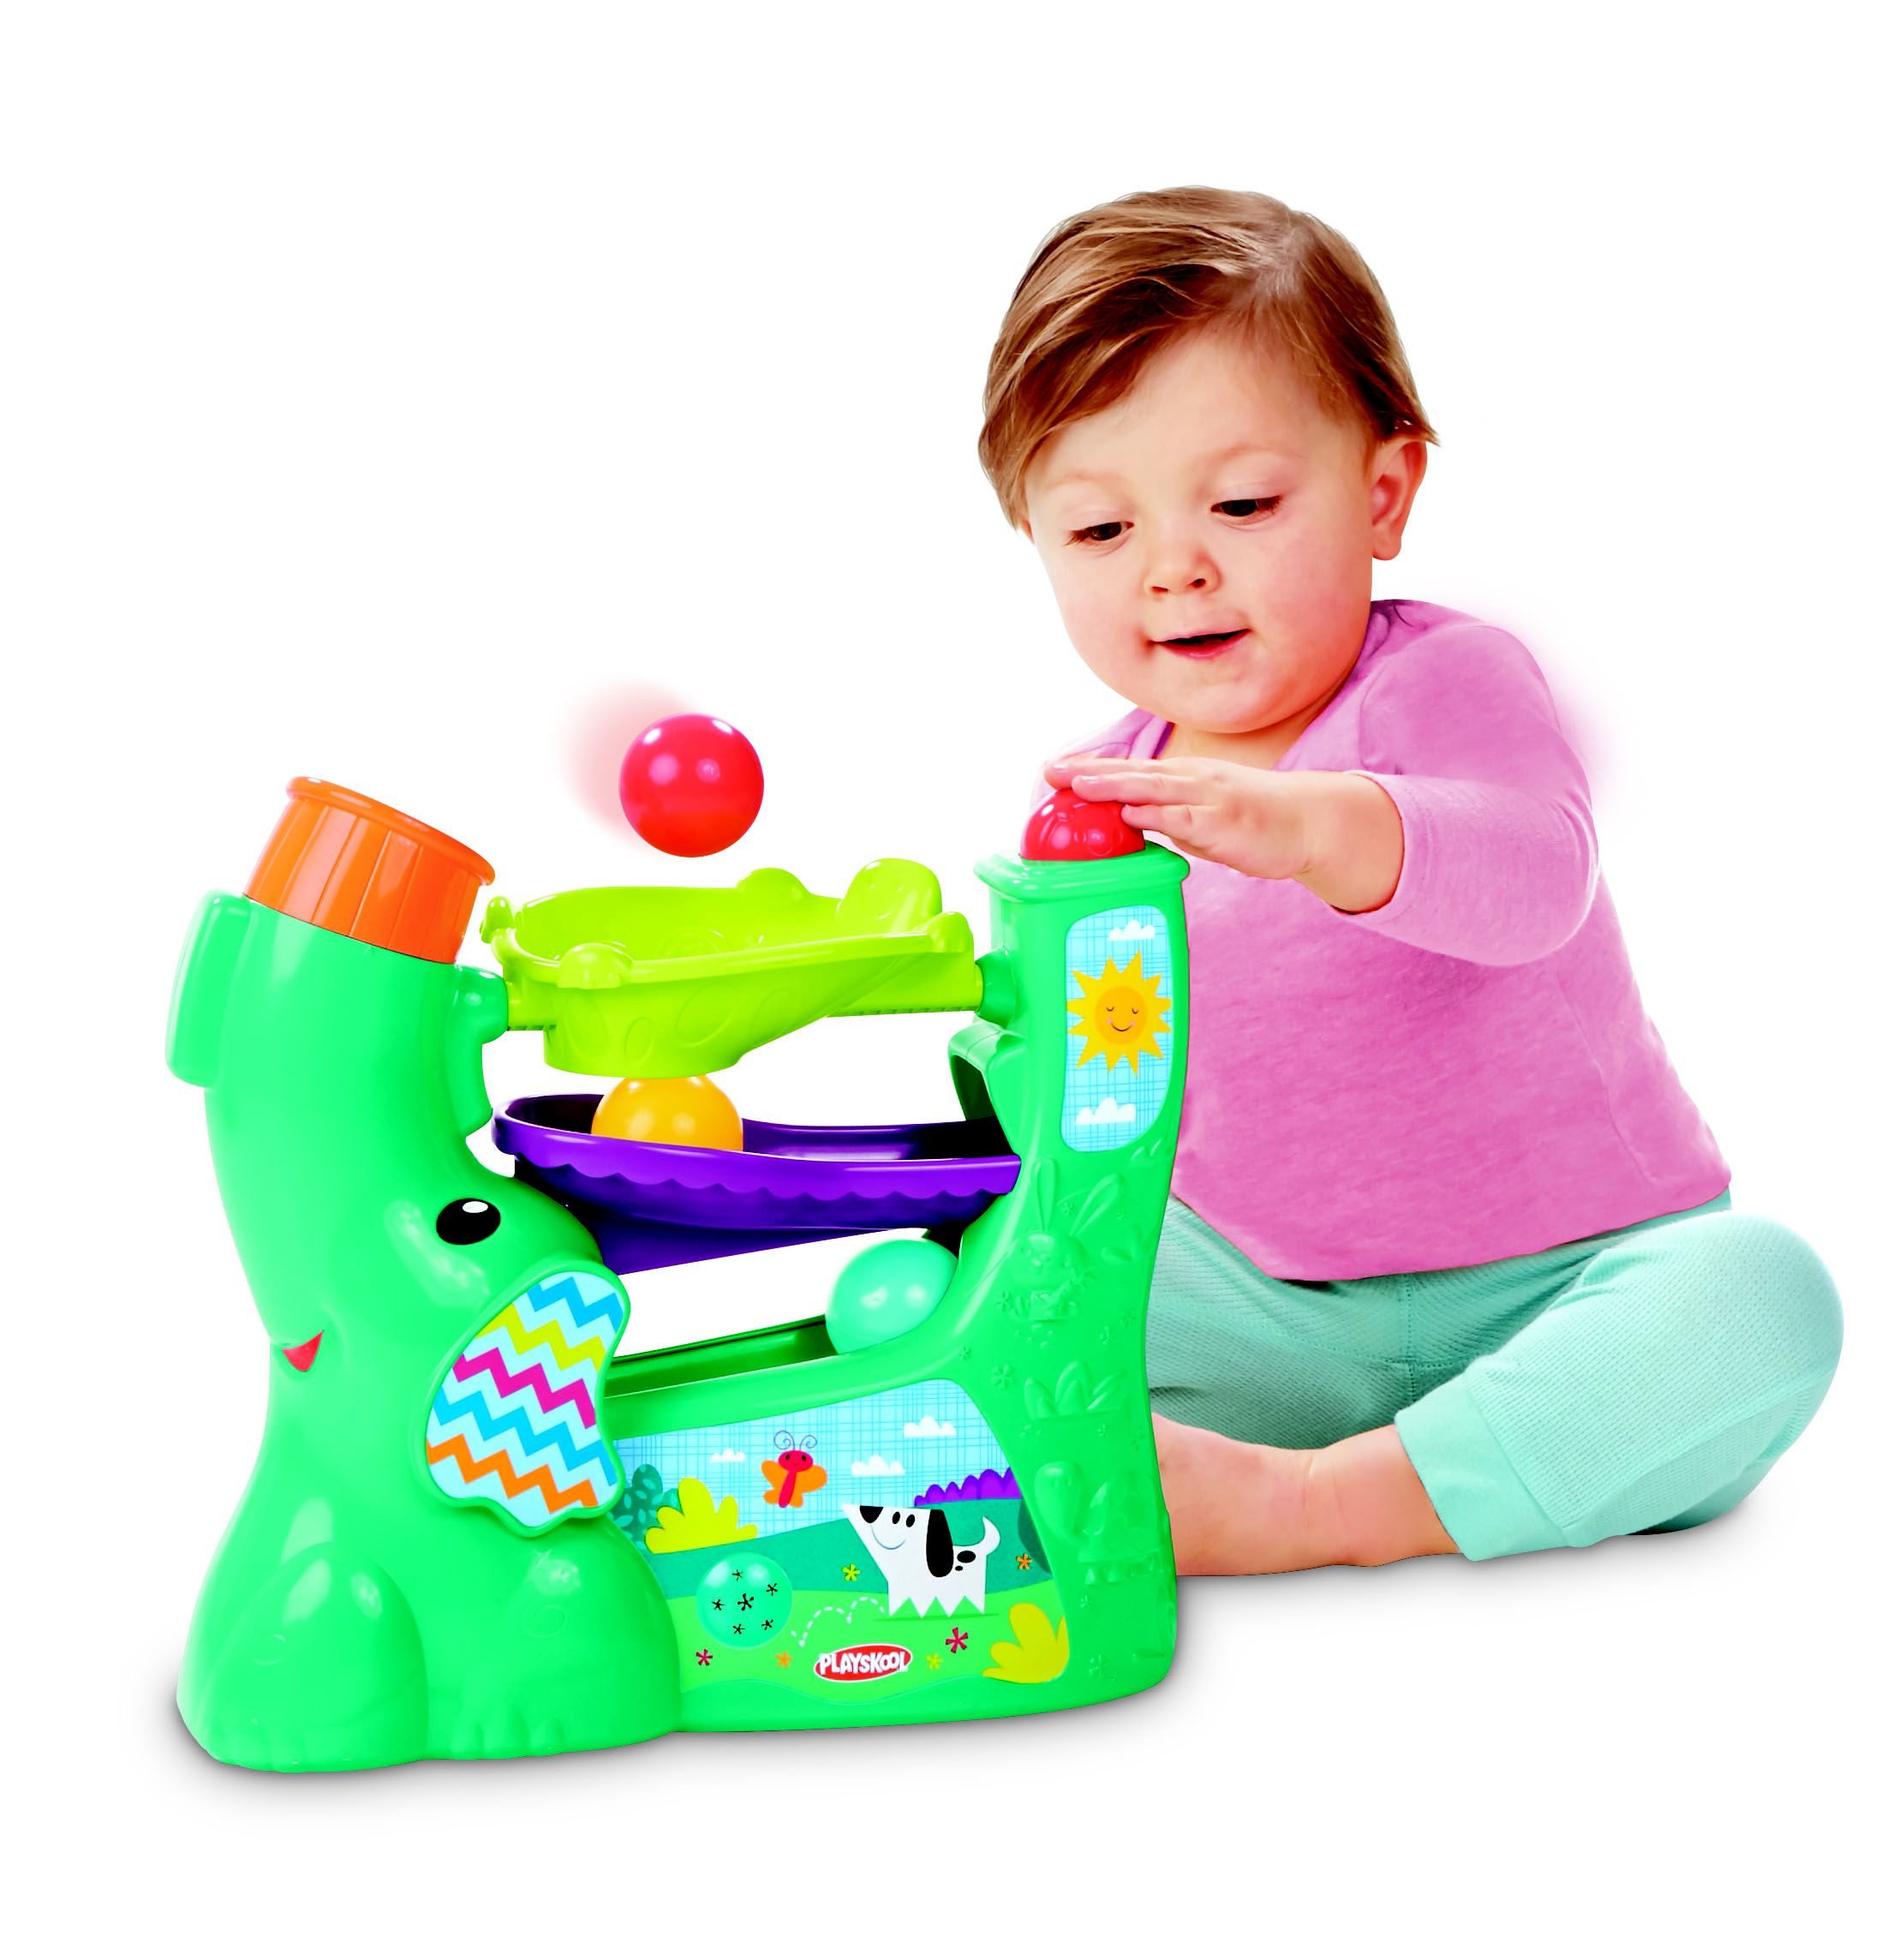 Permalink to Amazing toys for Infants Images